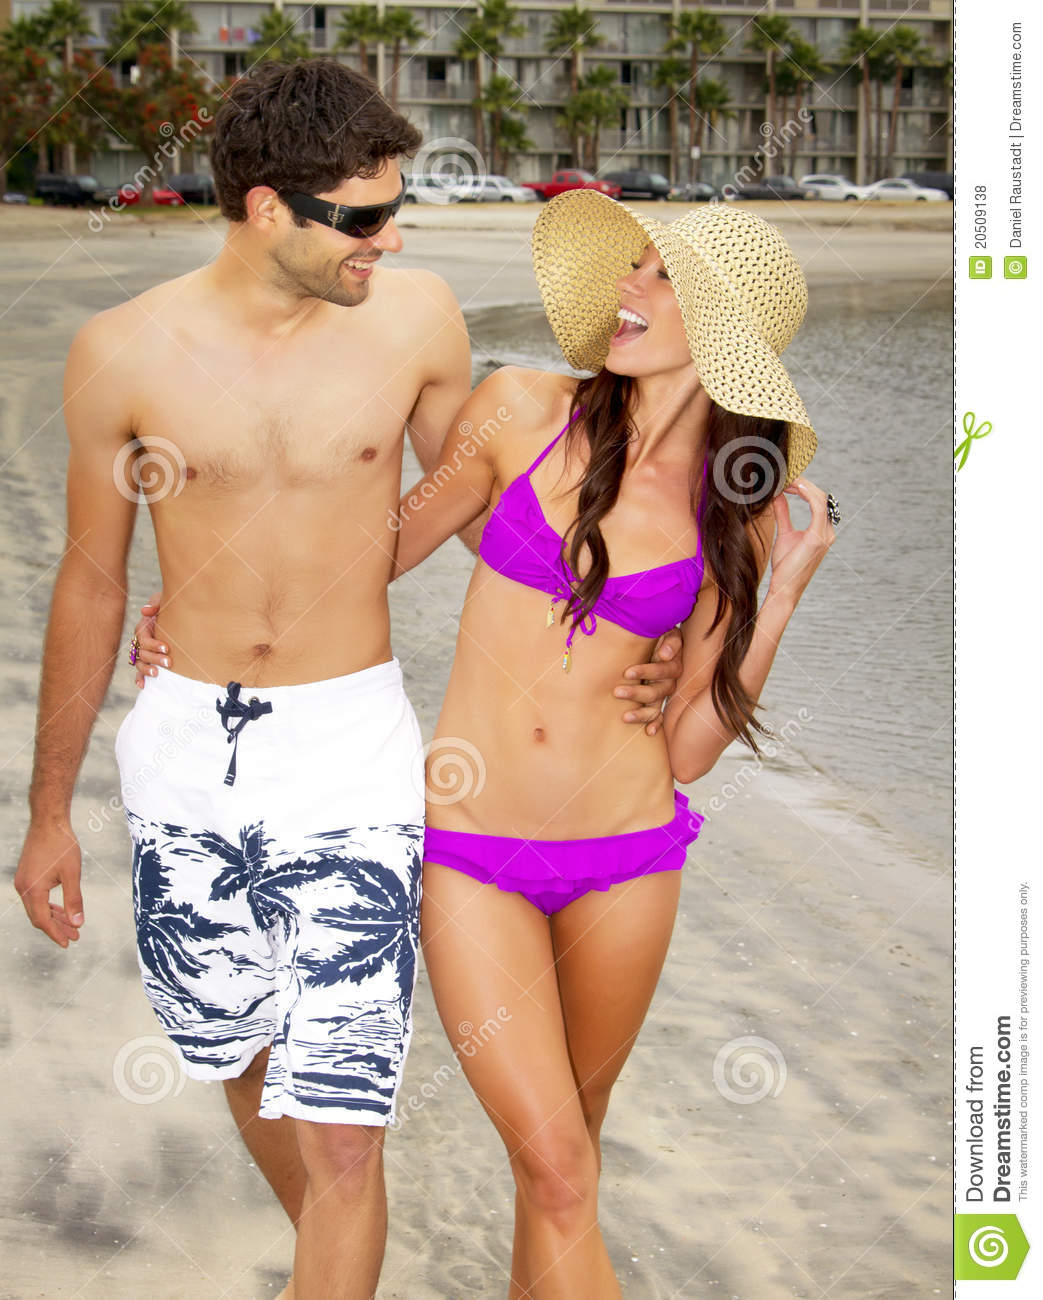 Couple At The Beach Stock Image Image Of Caucasian: Young Couple In Love At The Beach In San Diego Stock Photo